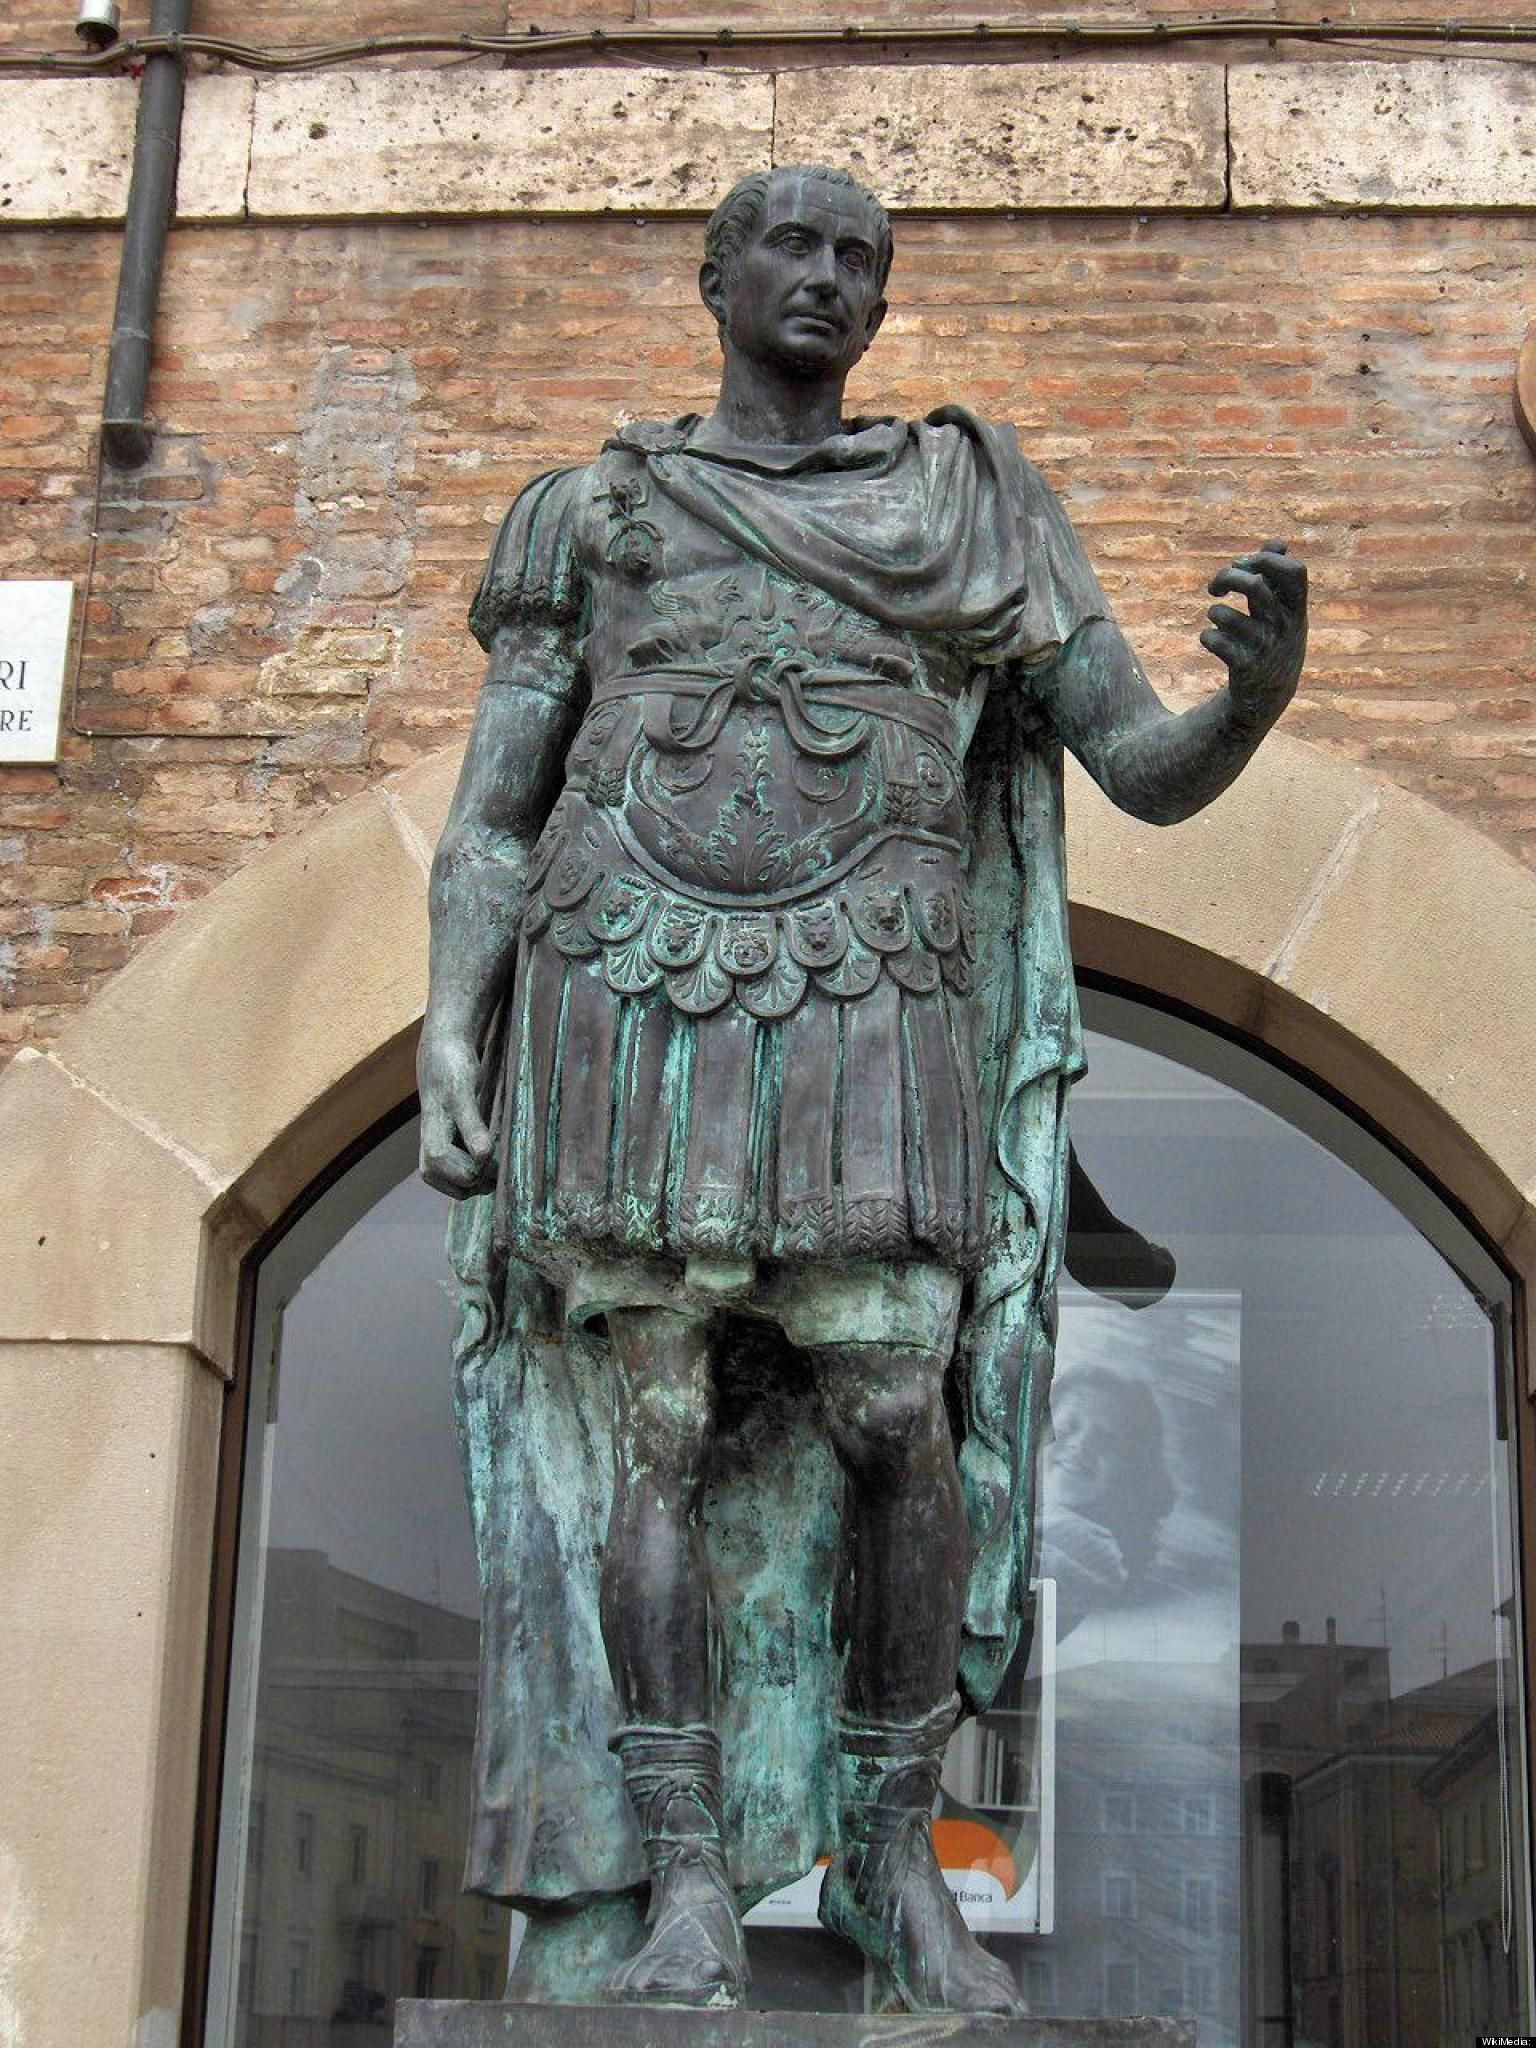 Julius Caesar. This modern statue can be seen in Rimini, Italy.